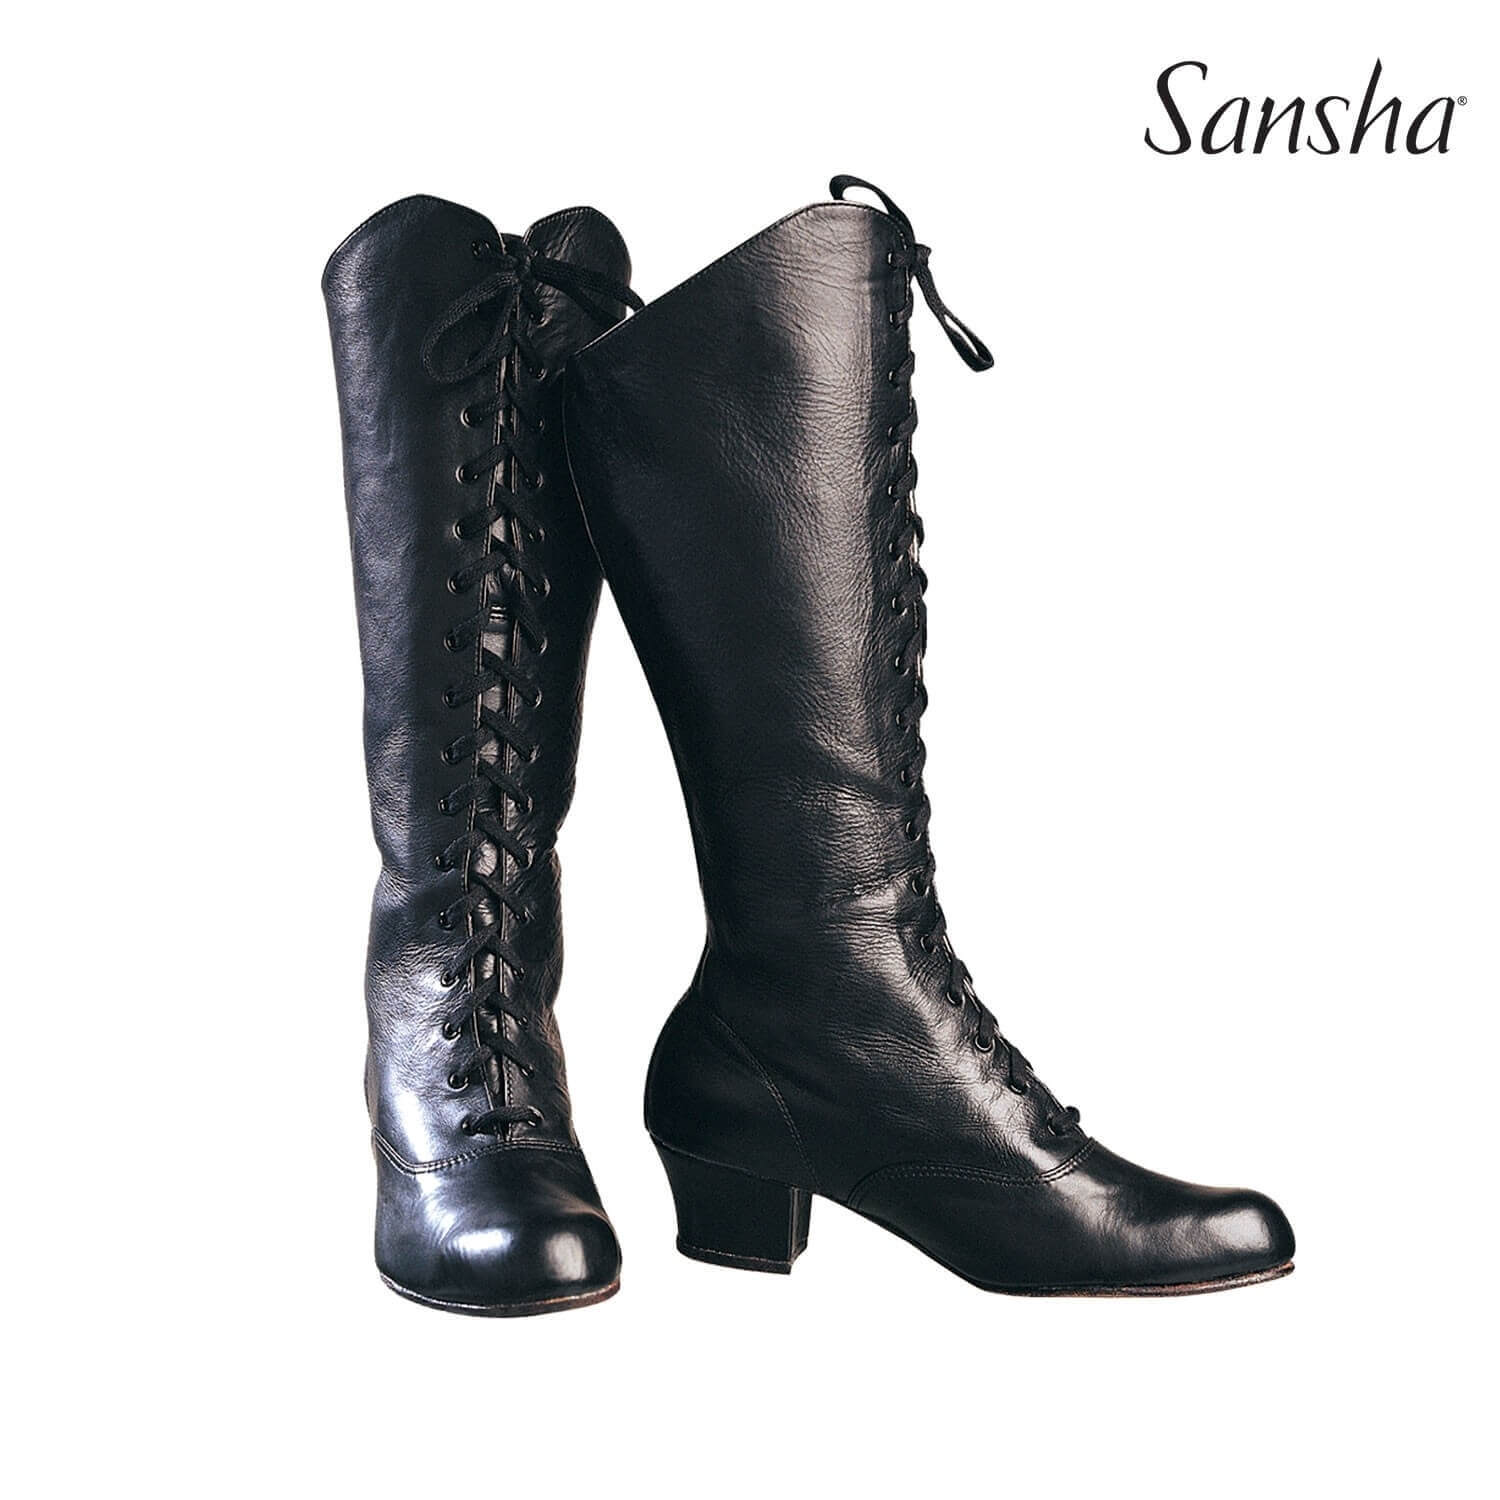 Sansha Canvas Can-can Front Lace-up Character Boots